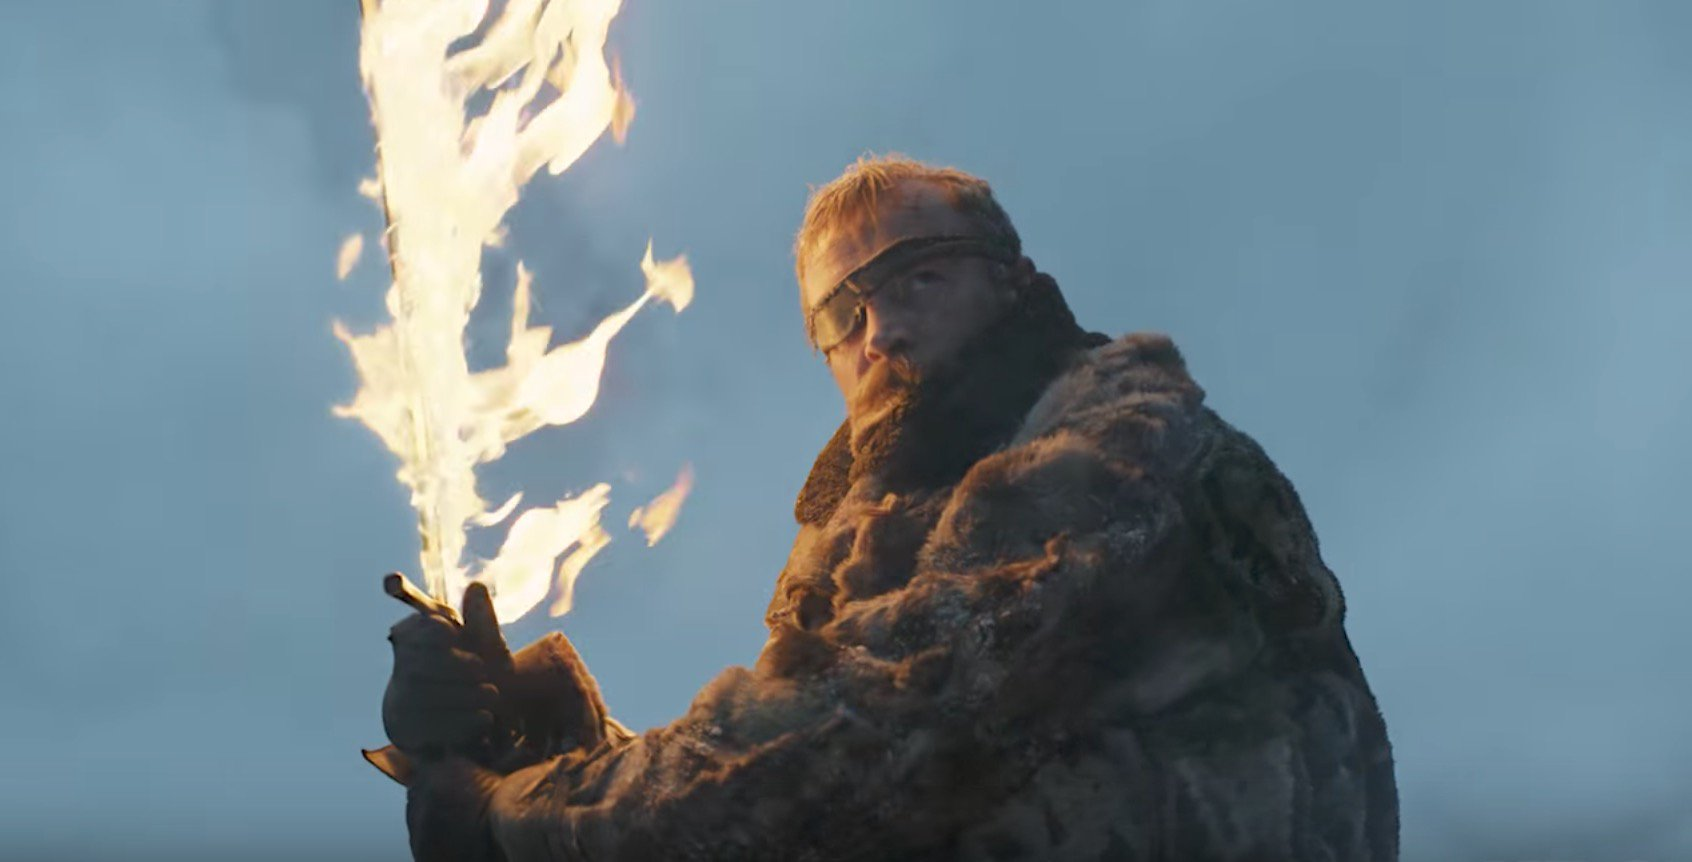 Dragons soaring and breathing fire; Jaime Lannister looking noble as he rides a galloping steed; Jon Snow and Sansa ruminating on survival and unity; and Beric Dondarrion waving a freaking flaming sword (!) are only a few of the highlights from the second official Game of Thrones trailer, which blows the first trailer right out of Blackwater Bay.